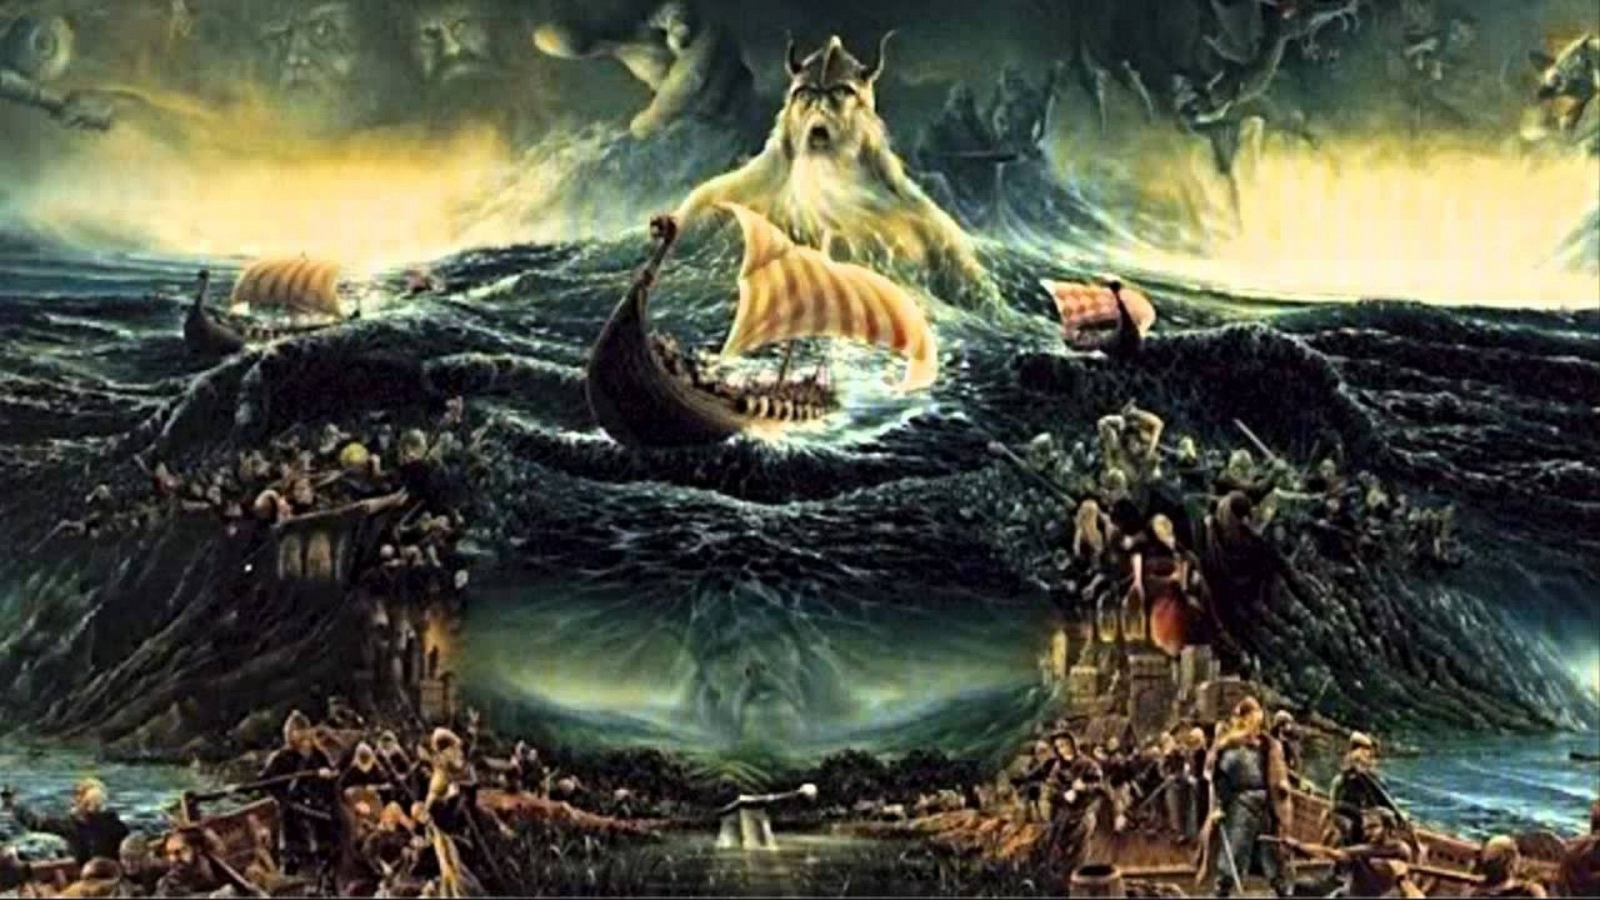 Free Download 65 Norse Mythology Wallpapers On Wallpaperplay 1920x1080 For Your Desktop Mobile Tablet Explore 49 Mythology Backgrounds Mythology Backgrounds Mythology Wallpaper Greek Mythology Wallpaper